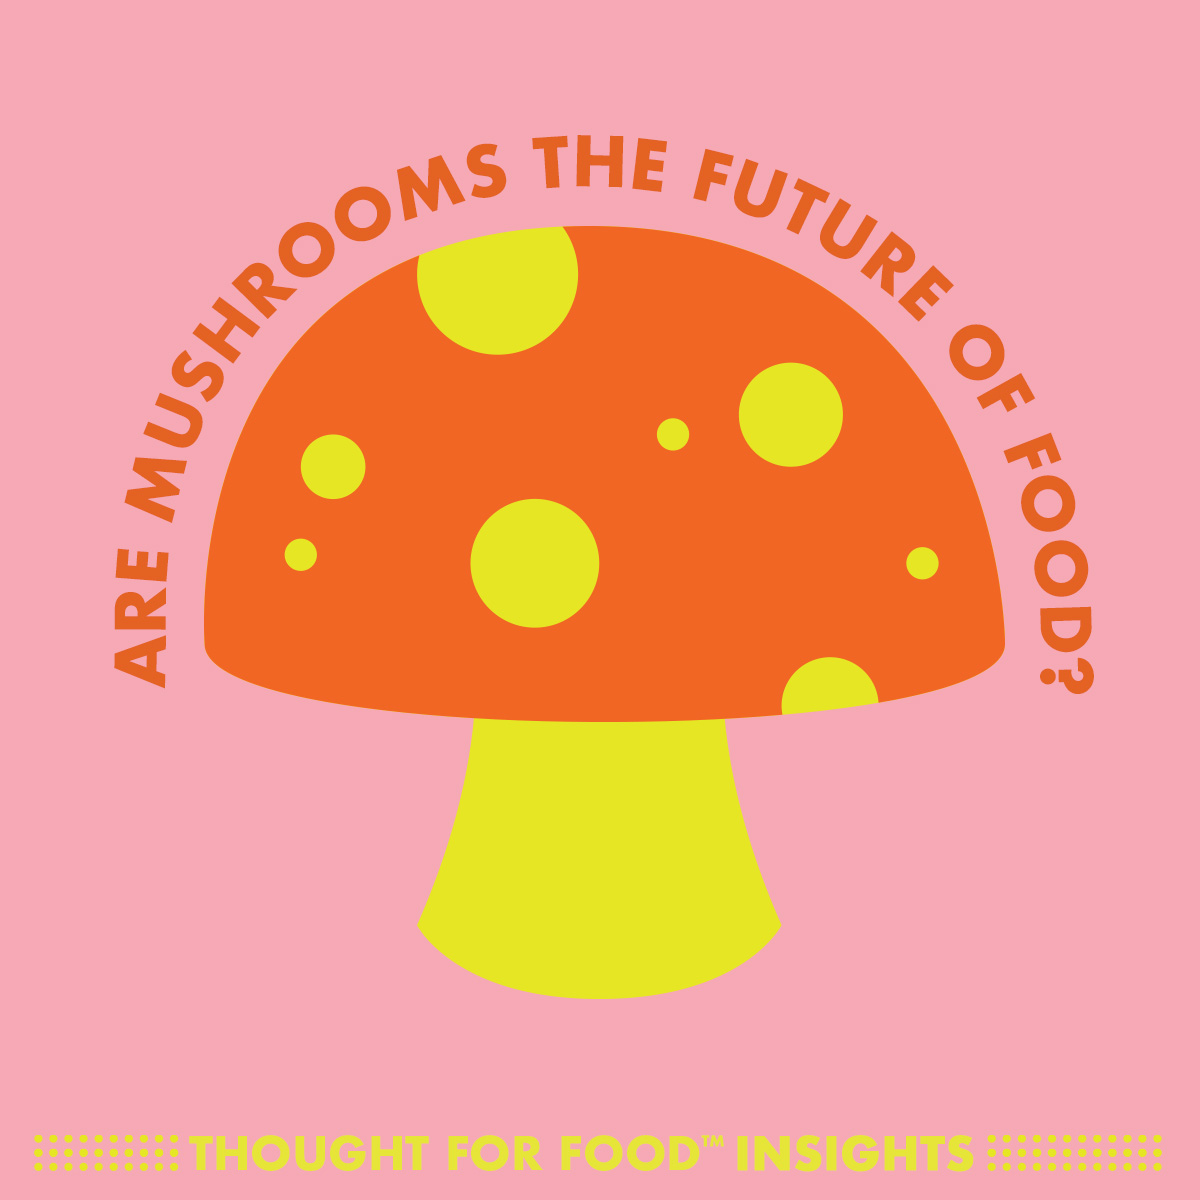 Are mushrooms the future of food?